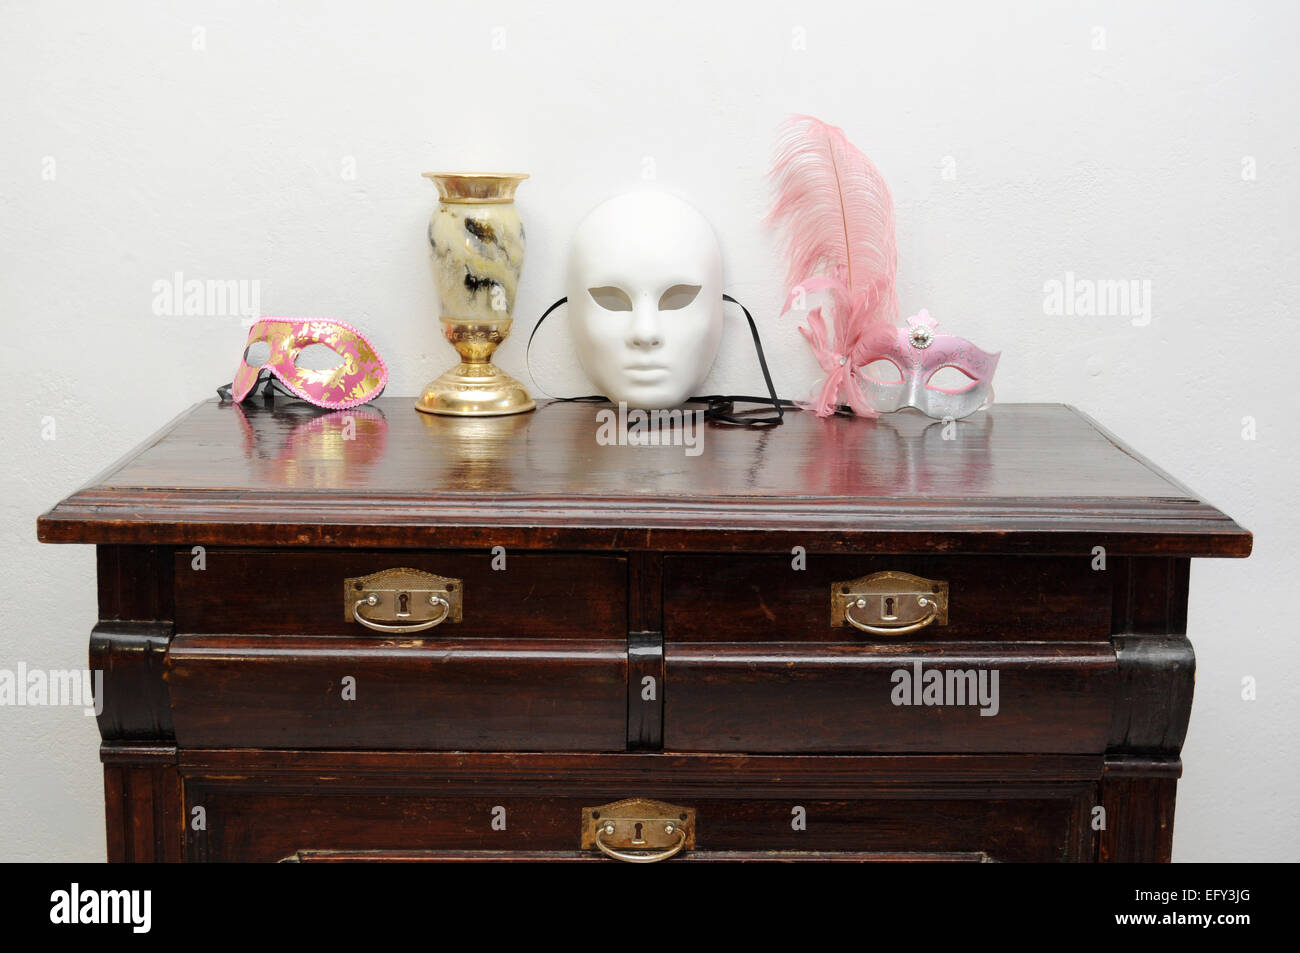 A Collection Of Masks And An Old Goblet On The Vintage Commode Stock